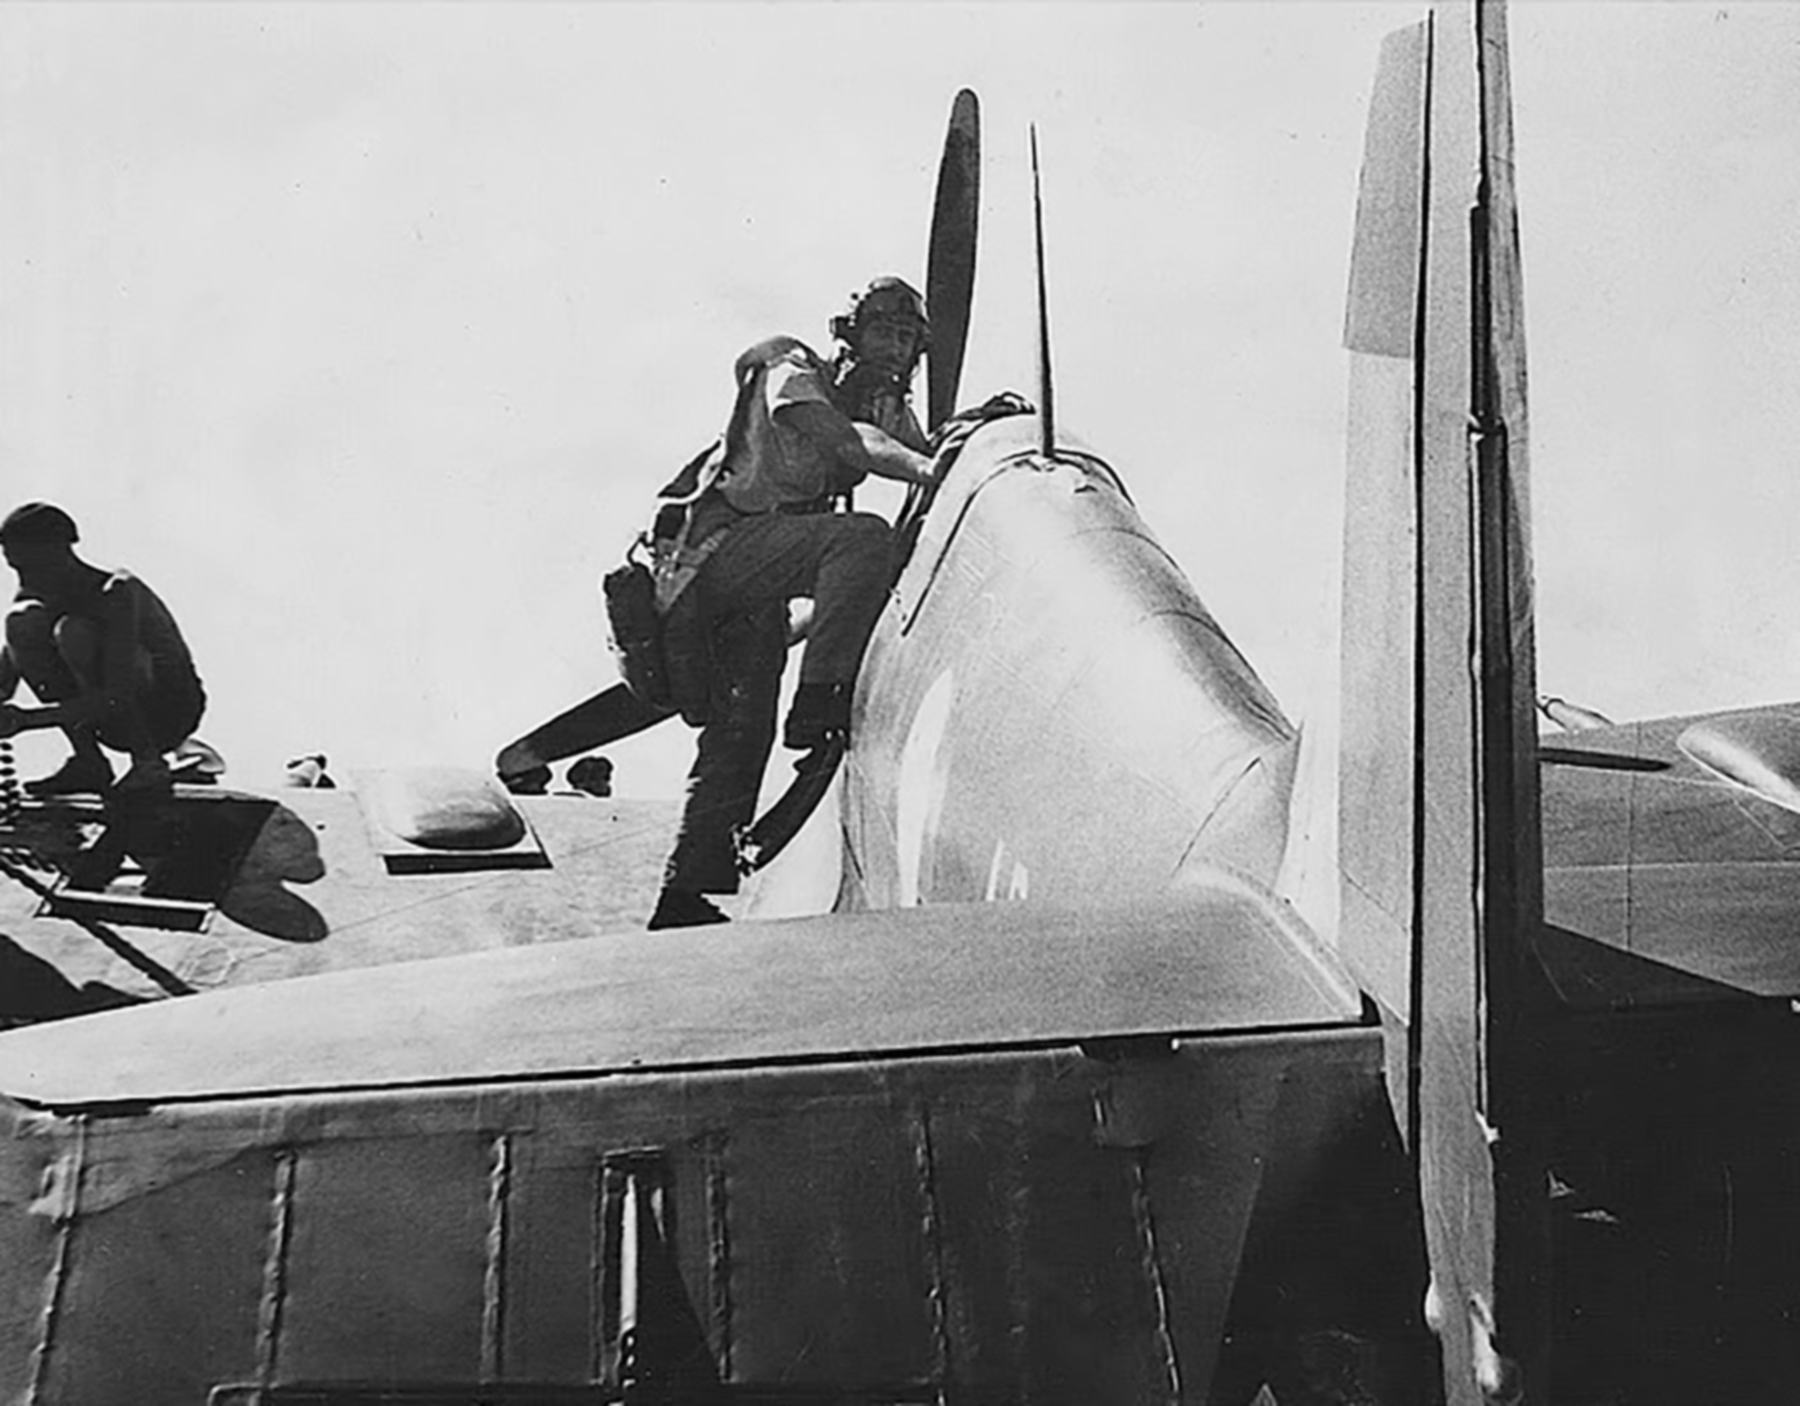 Aircrew RAAF 452 Squadron Bardie stepping into Spitfire 01